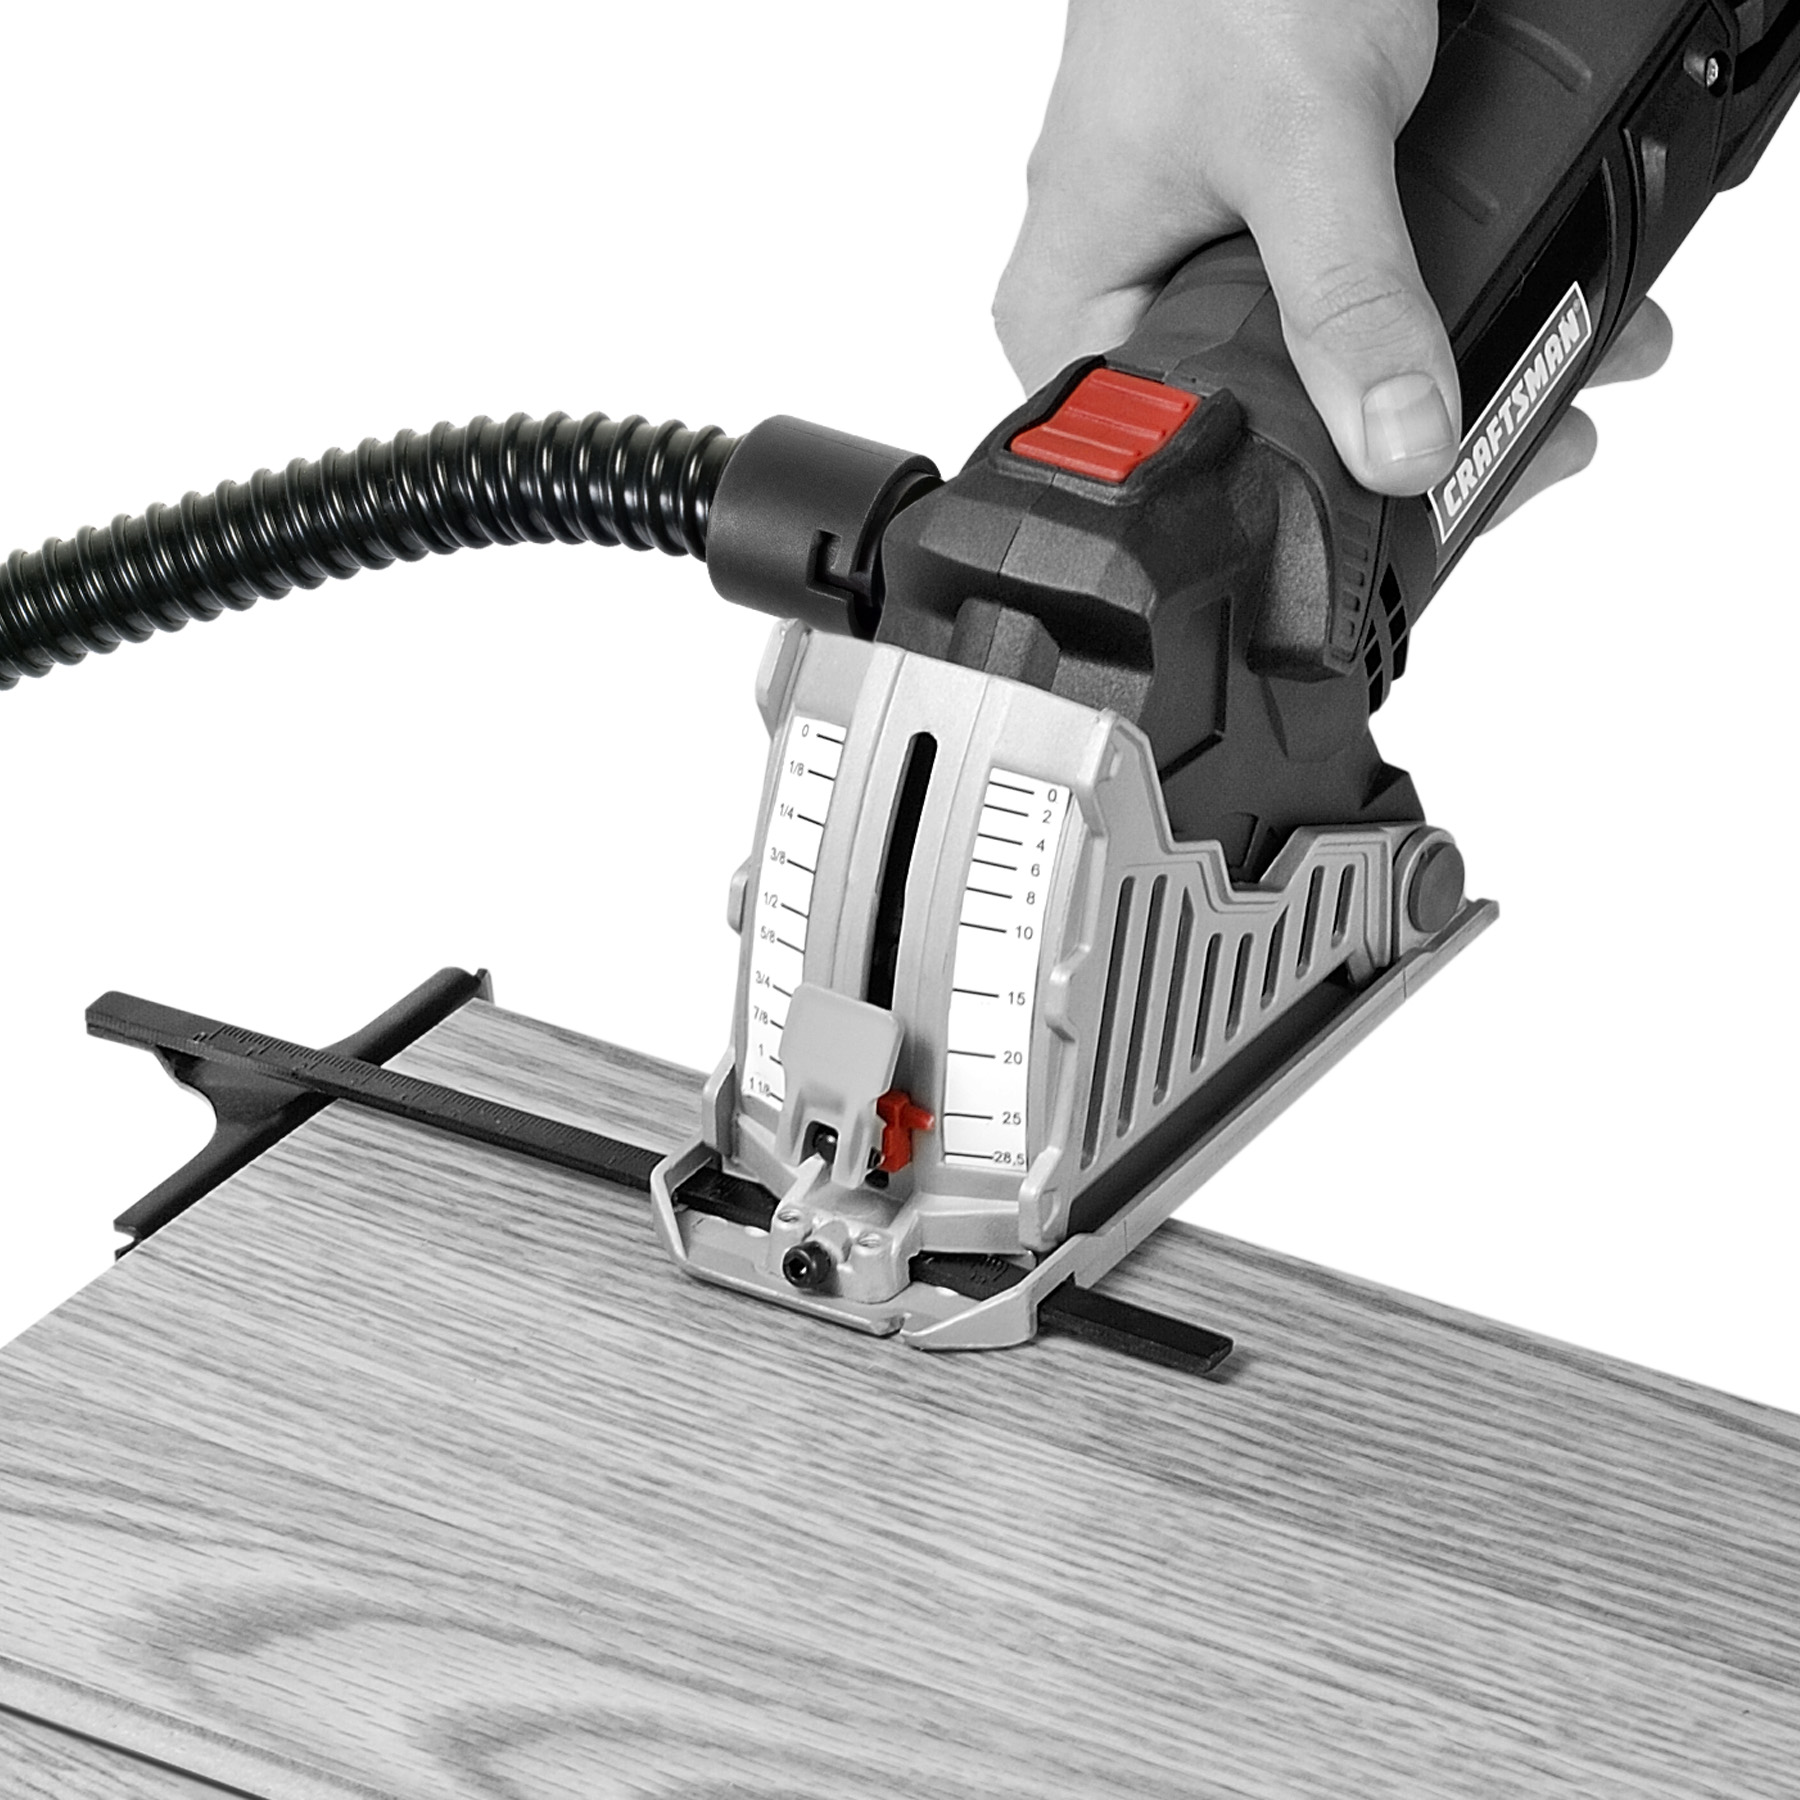 "Craftsman 3-1/2"" TRAK-CUT ™ Circular Saw with Miter Guide Base"